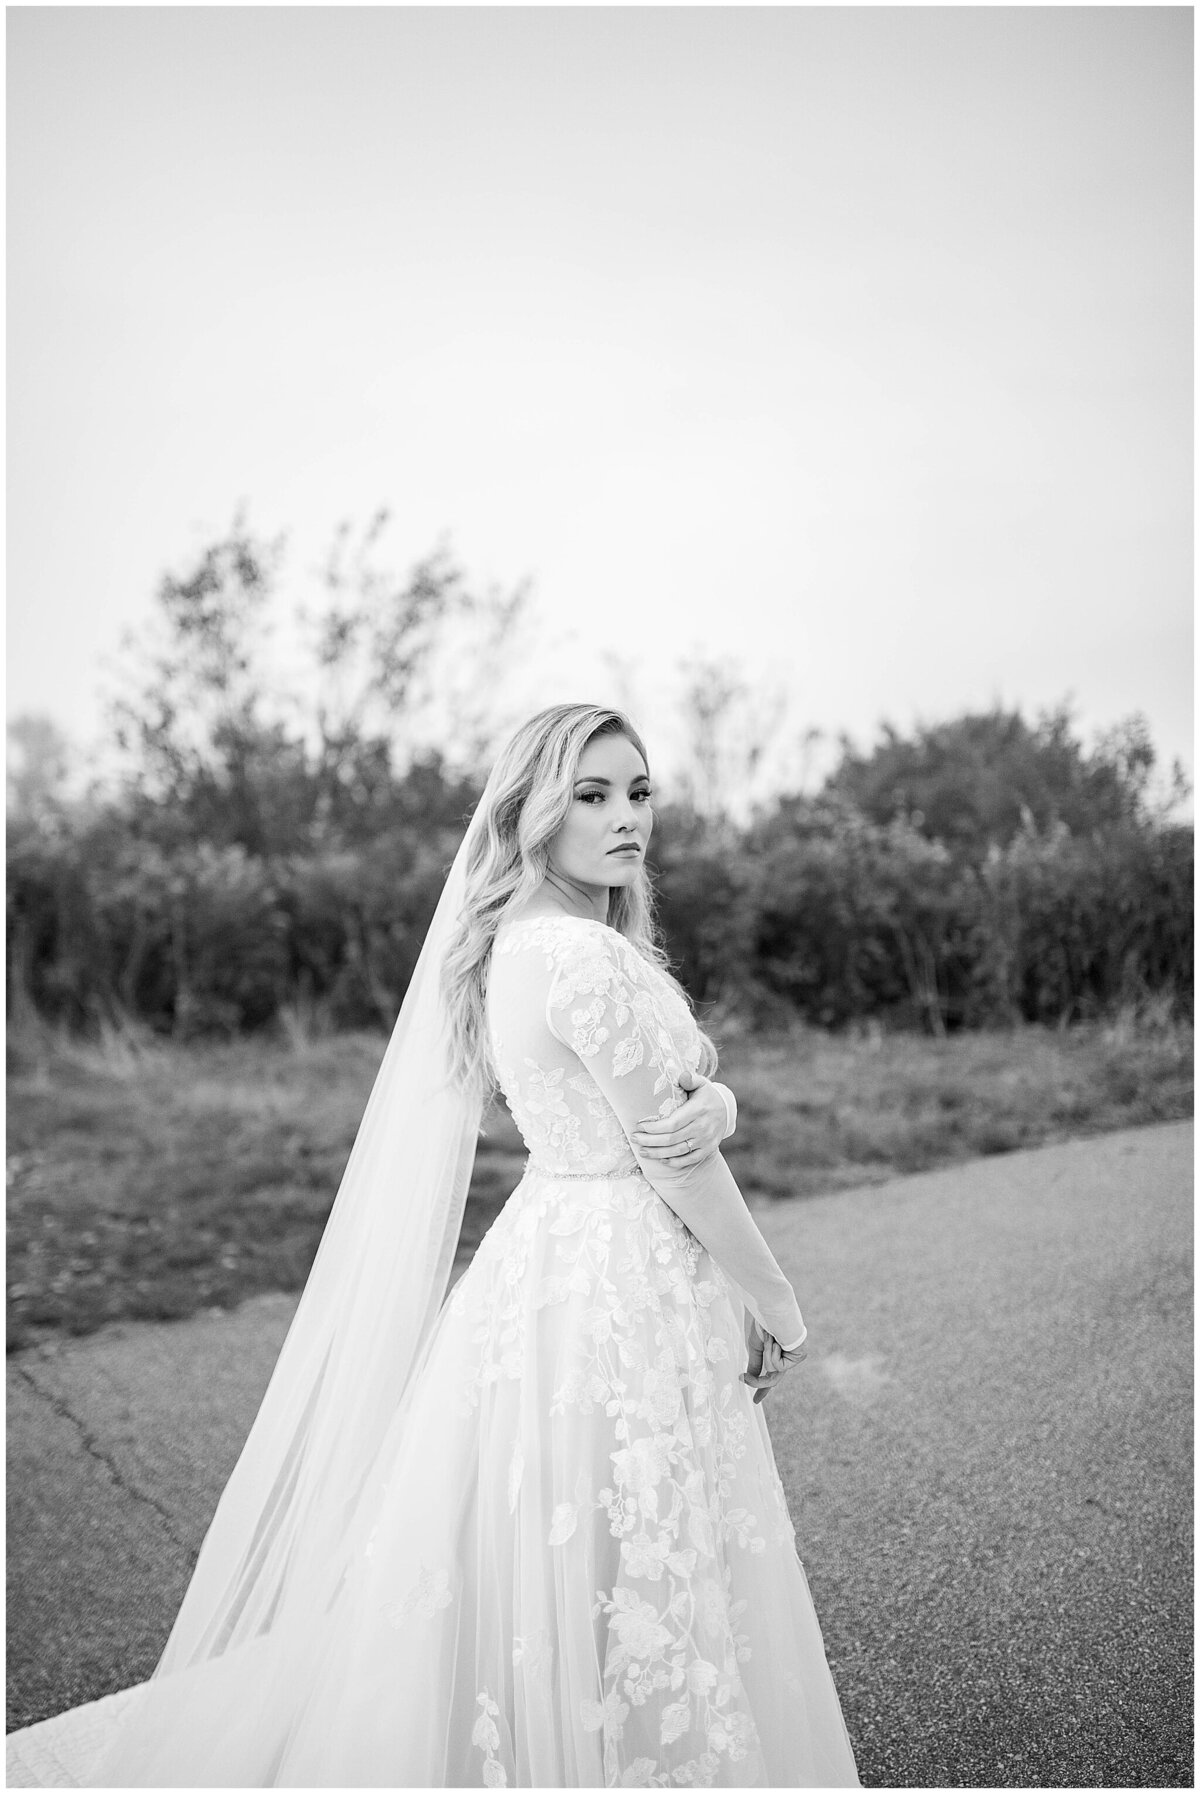 Madalyn Bridals144 September 19, 2019